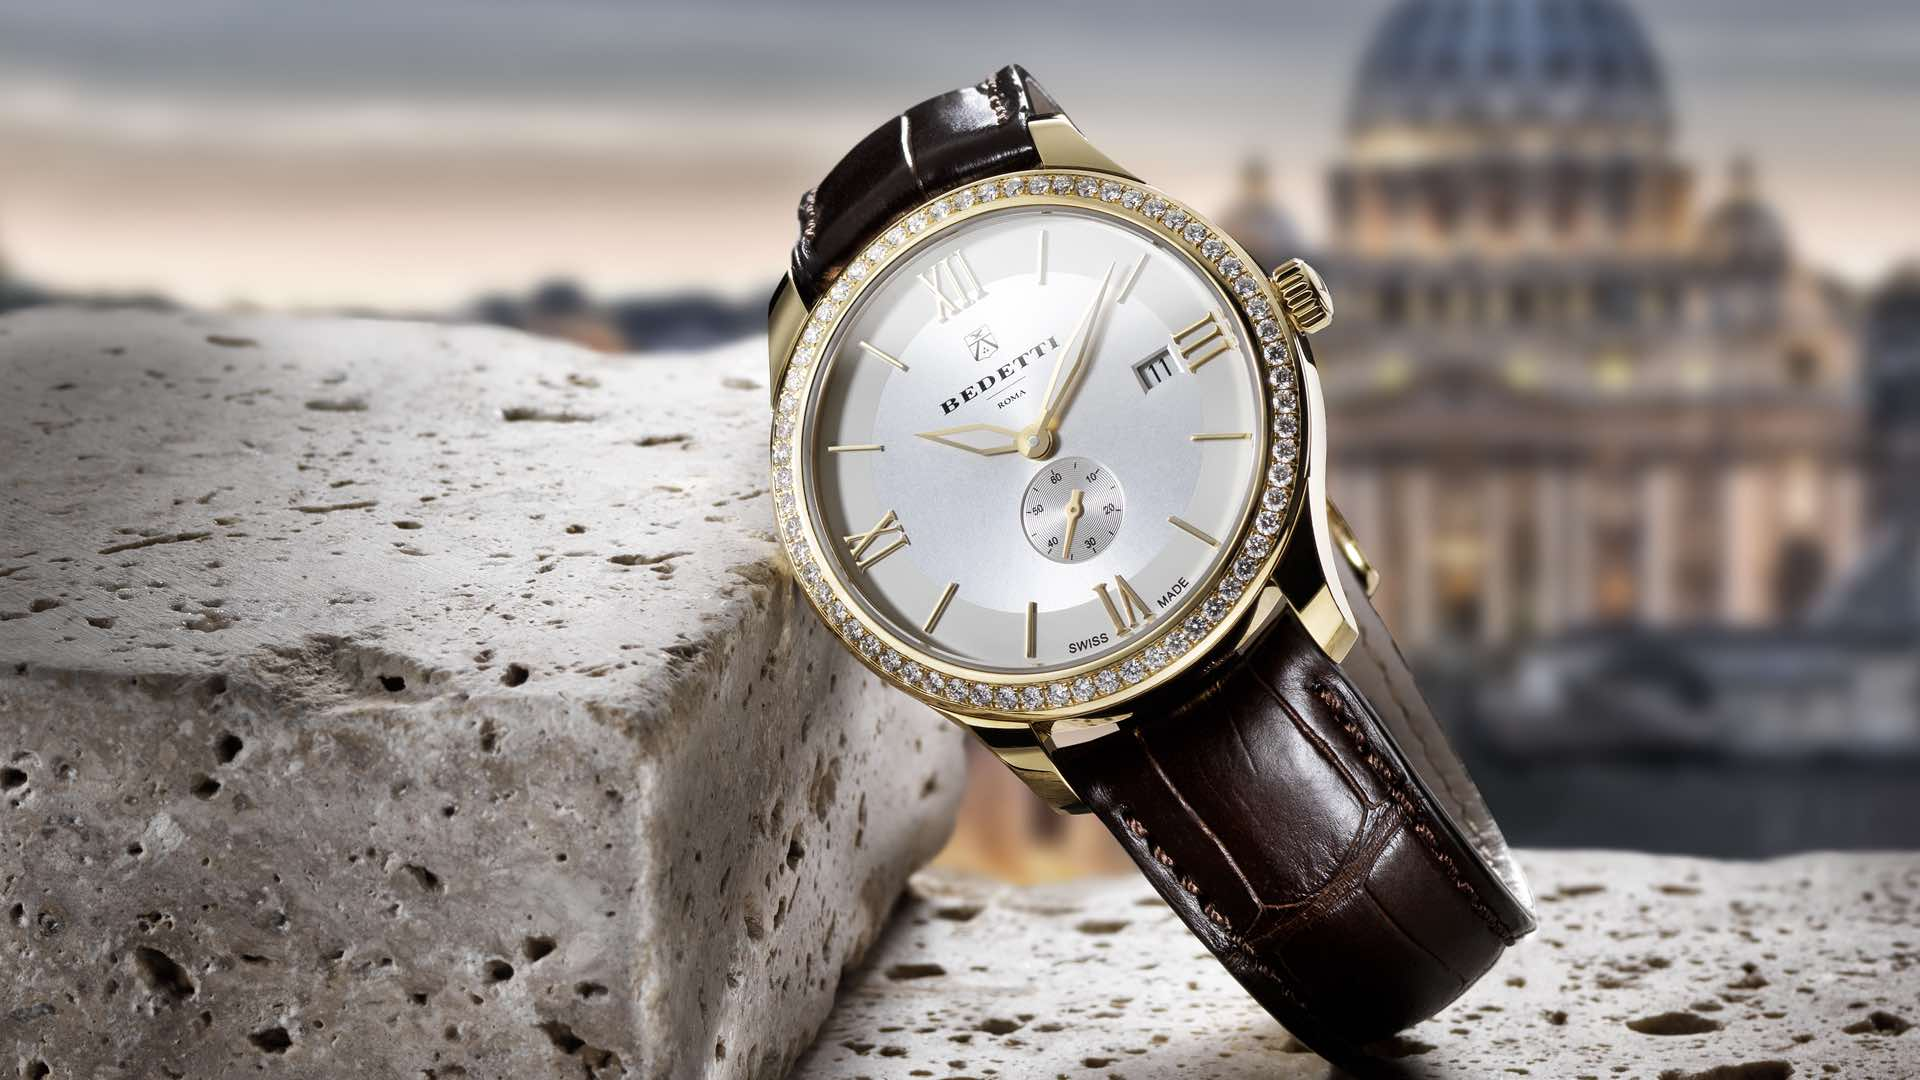 Total gold and diamonds white dial